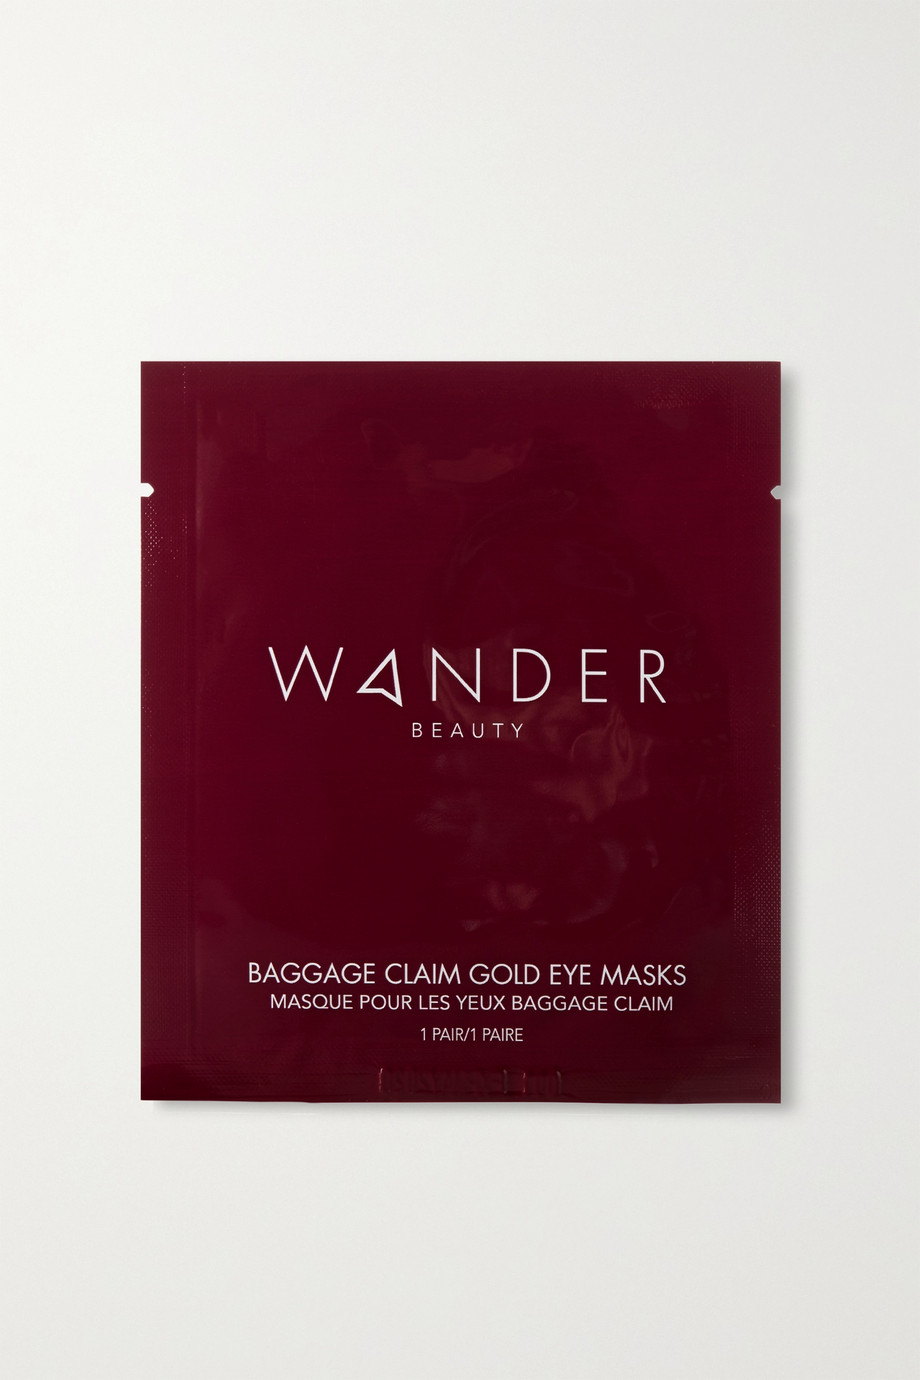 Wander Beauty Masque pour les yeux Baggage Claim x 6